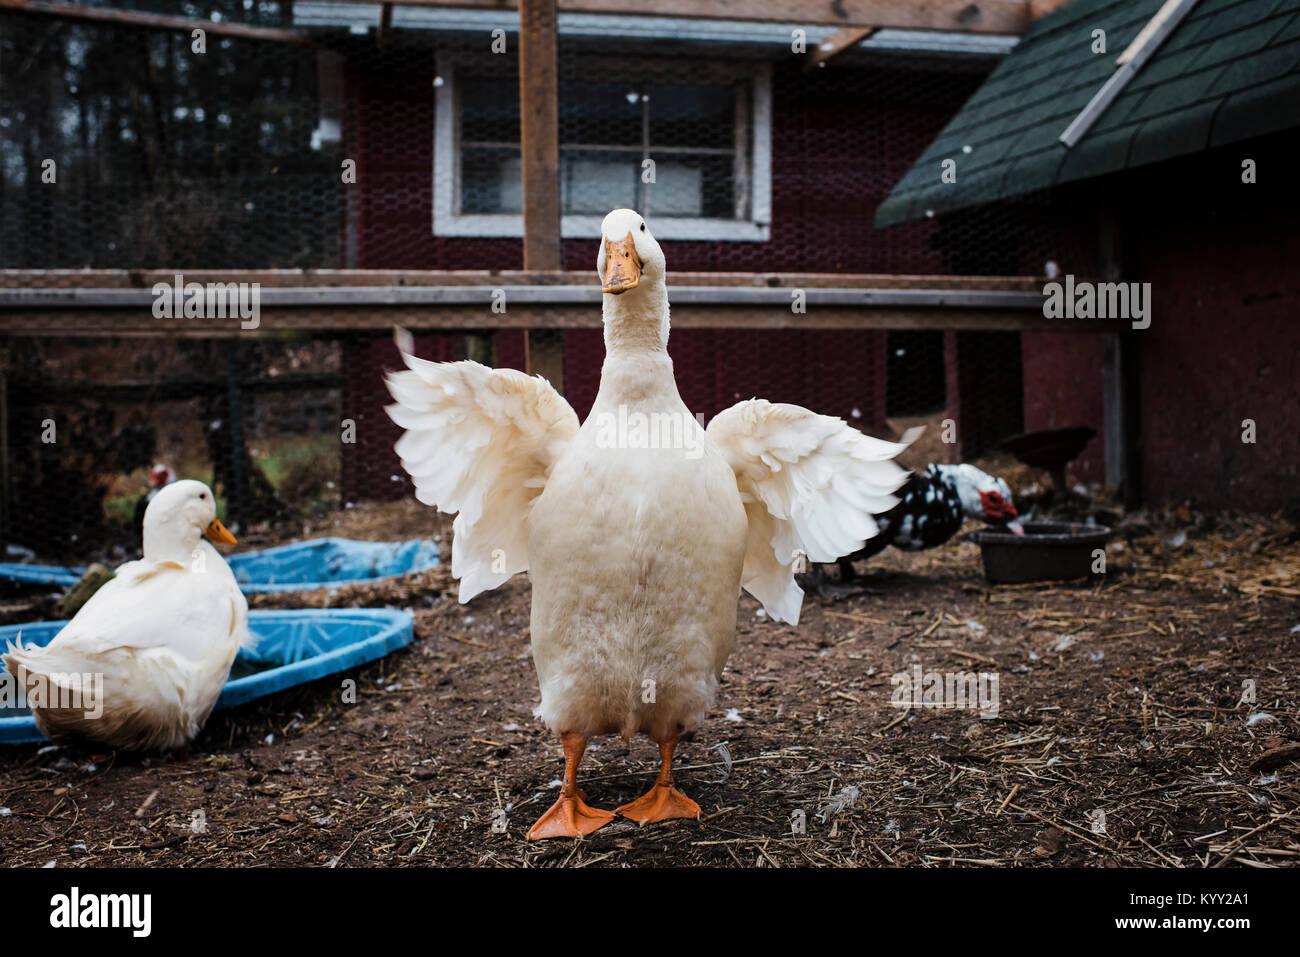 Ducks at poultry farm - Stock Image